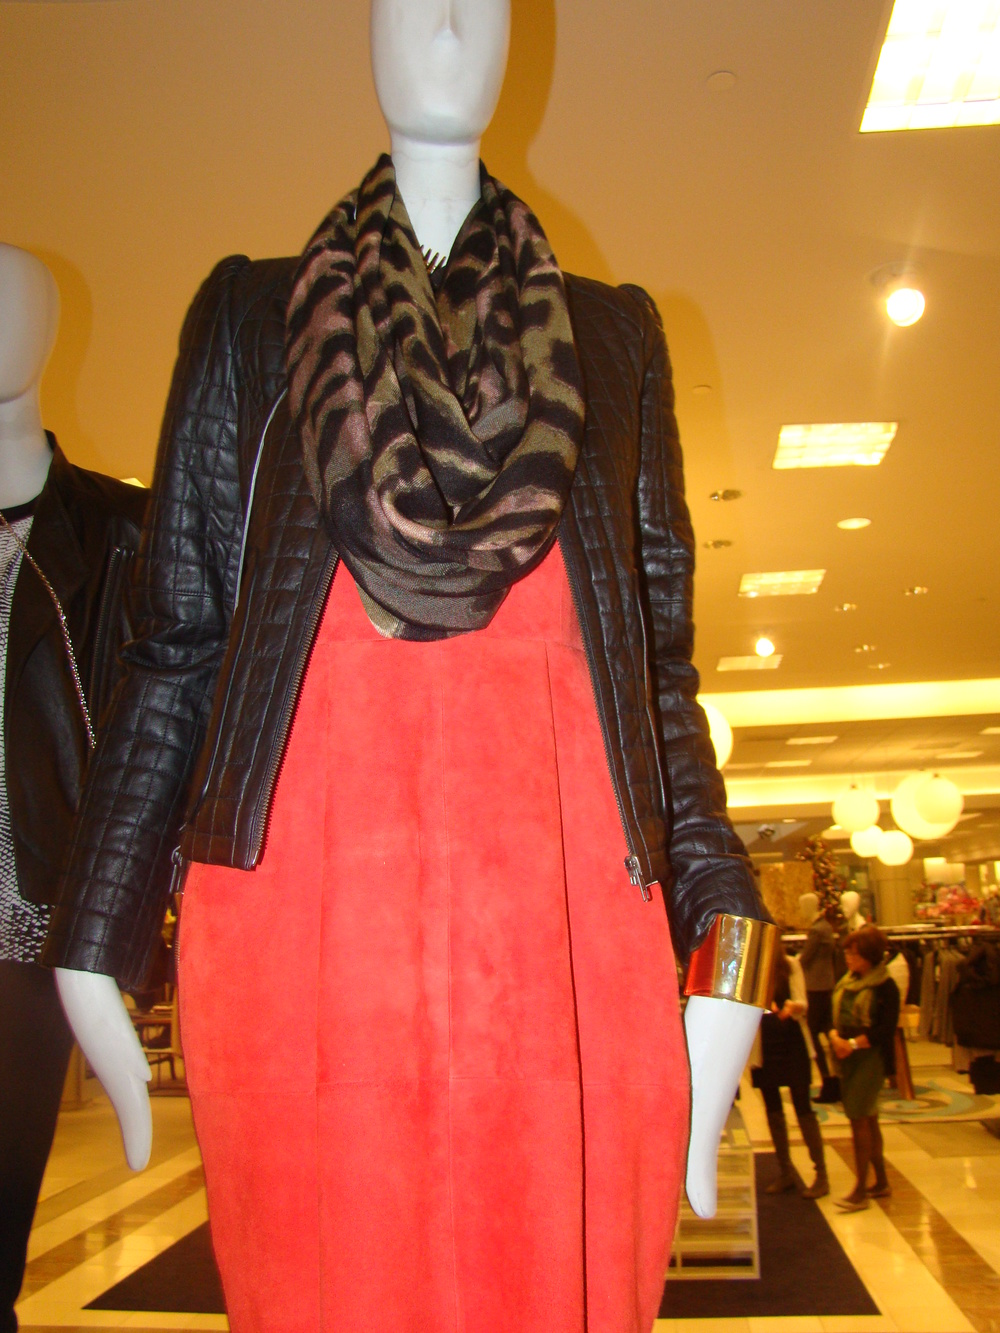 A gorgeous, red dress, Joie Moto jacket and an animal print scarf